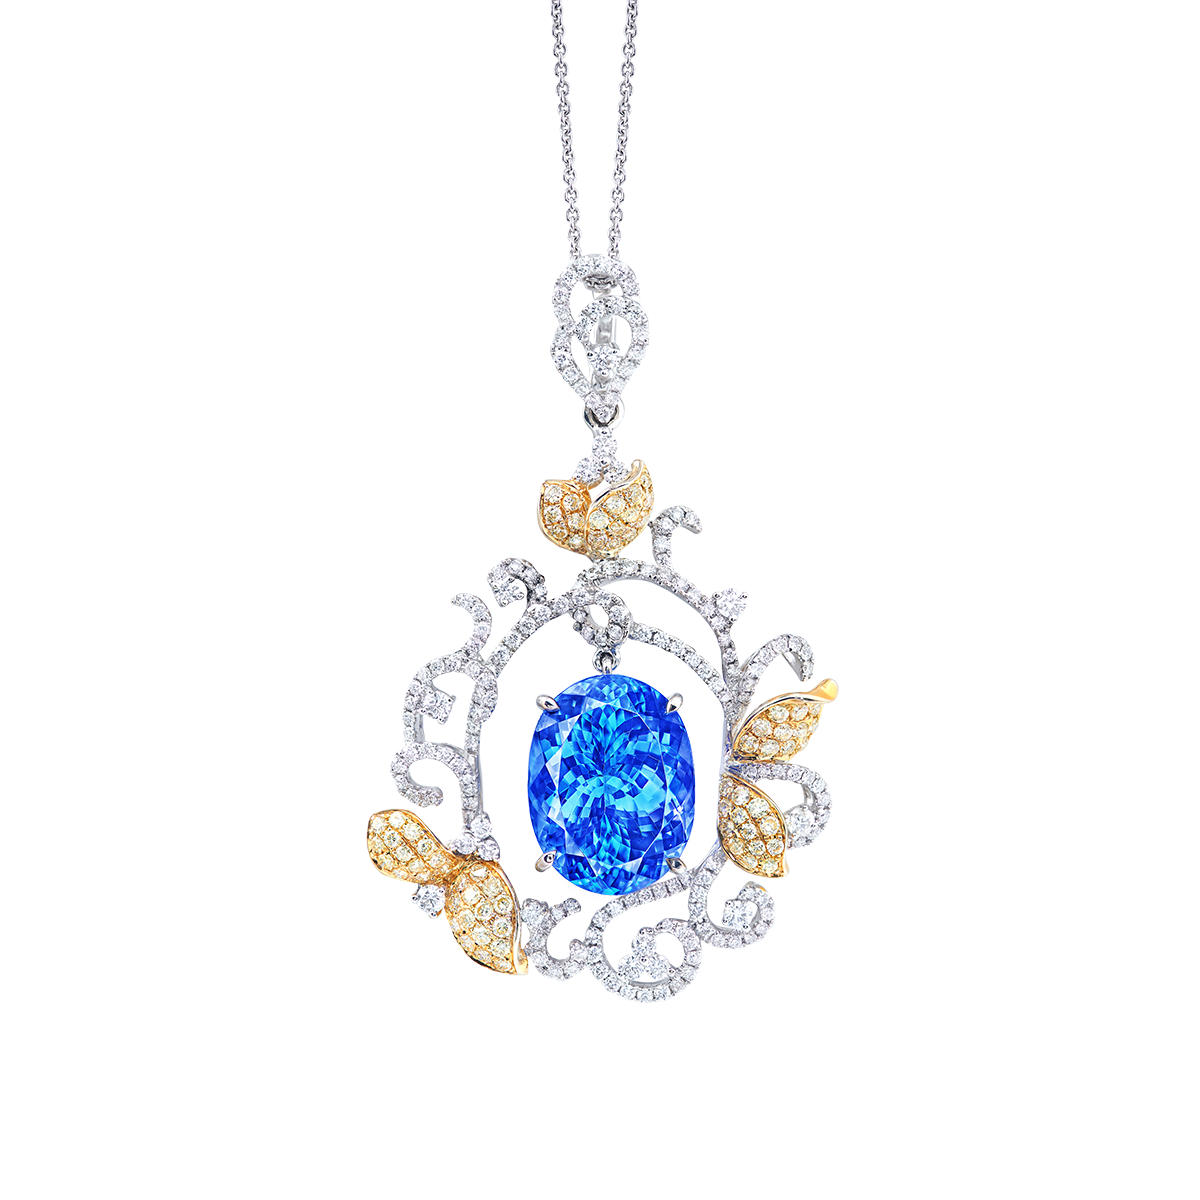 20.05克拉 天然丹泉石鑽石墜鍊